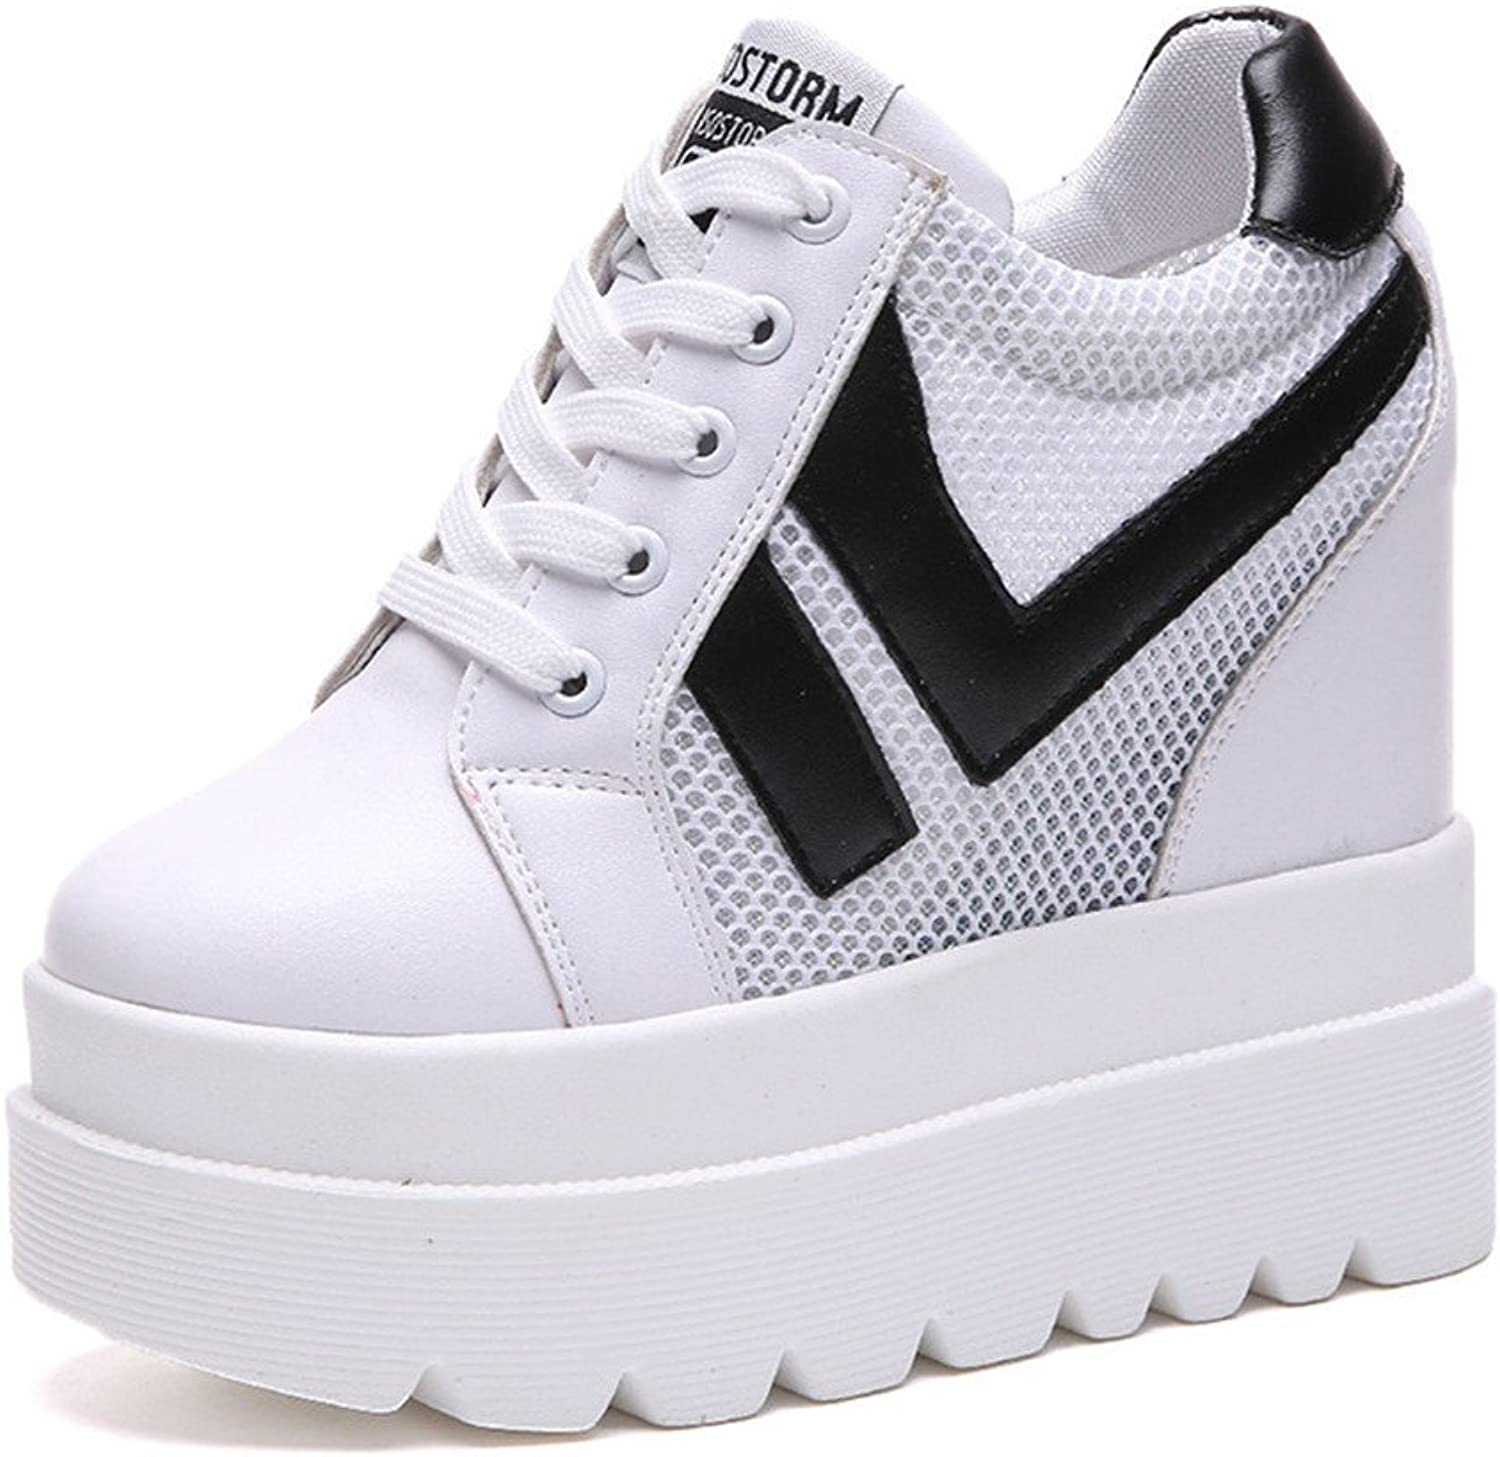 Believed Canvas shoes Woman Height Increasing Casual shoes Wedge Platform shoes Sneakers shoes